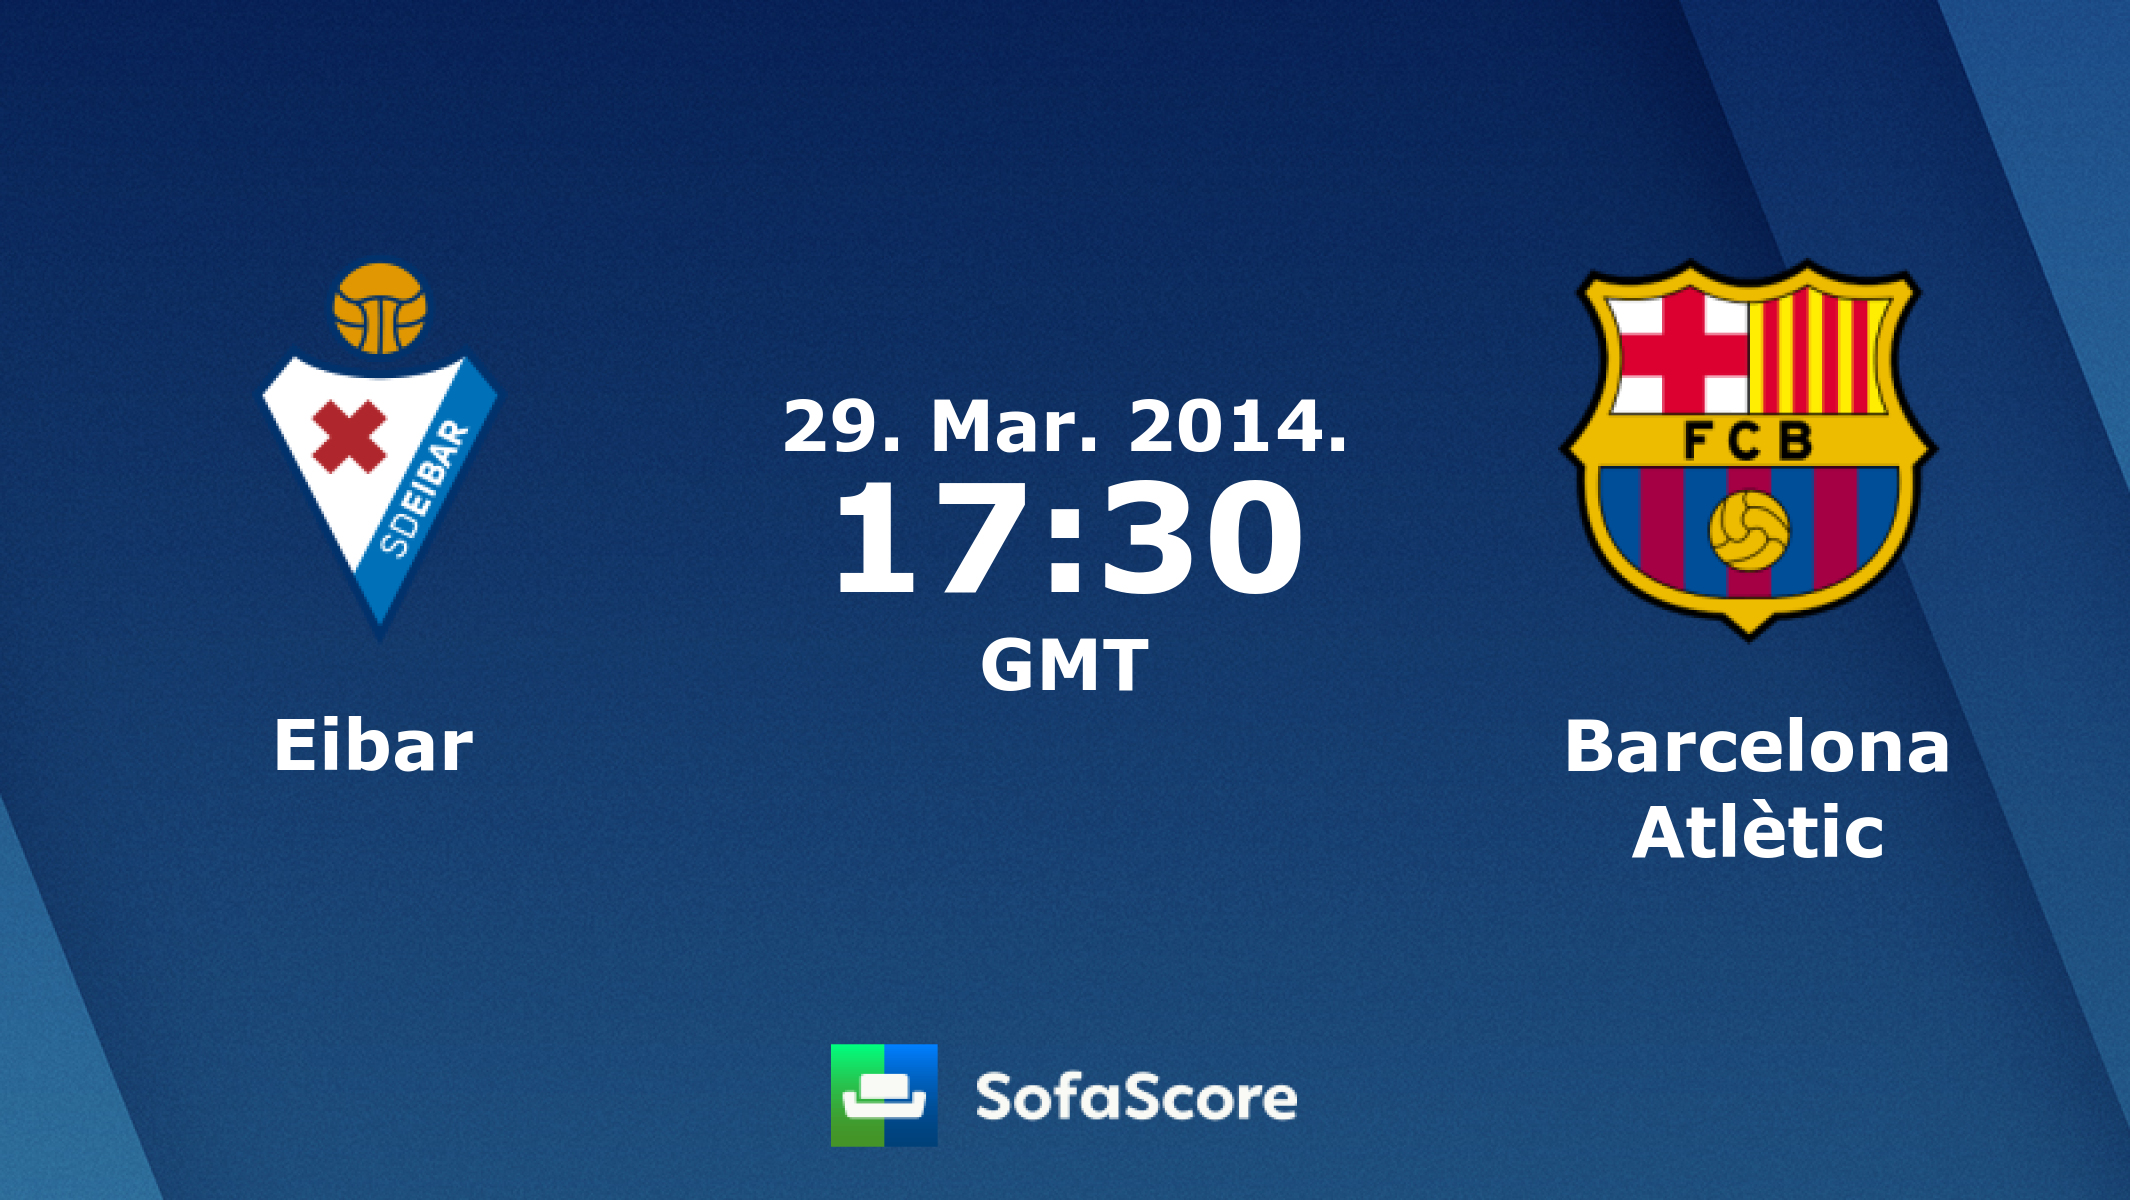 eibar-barcellona - photo #42